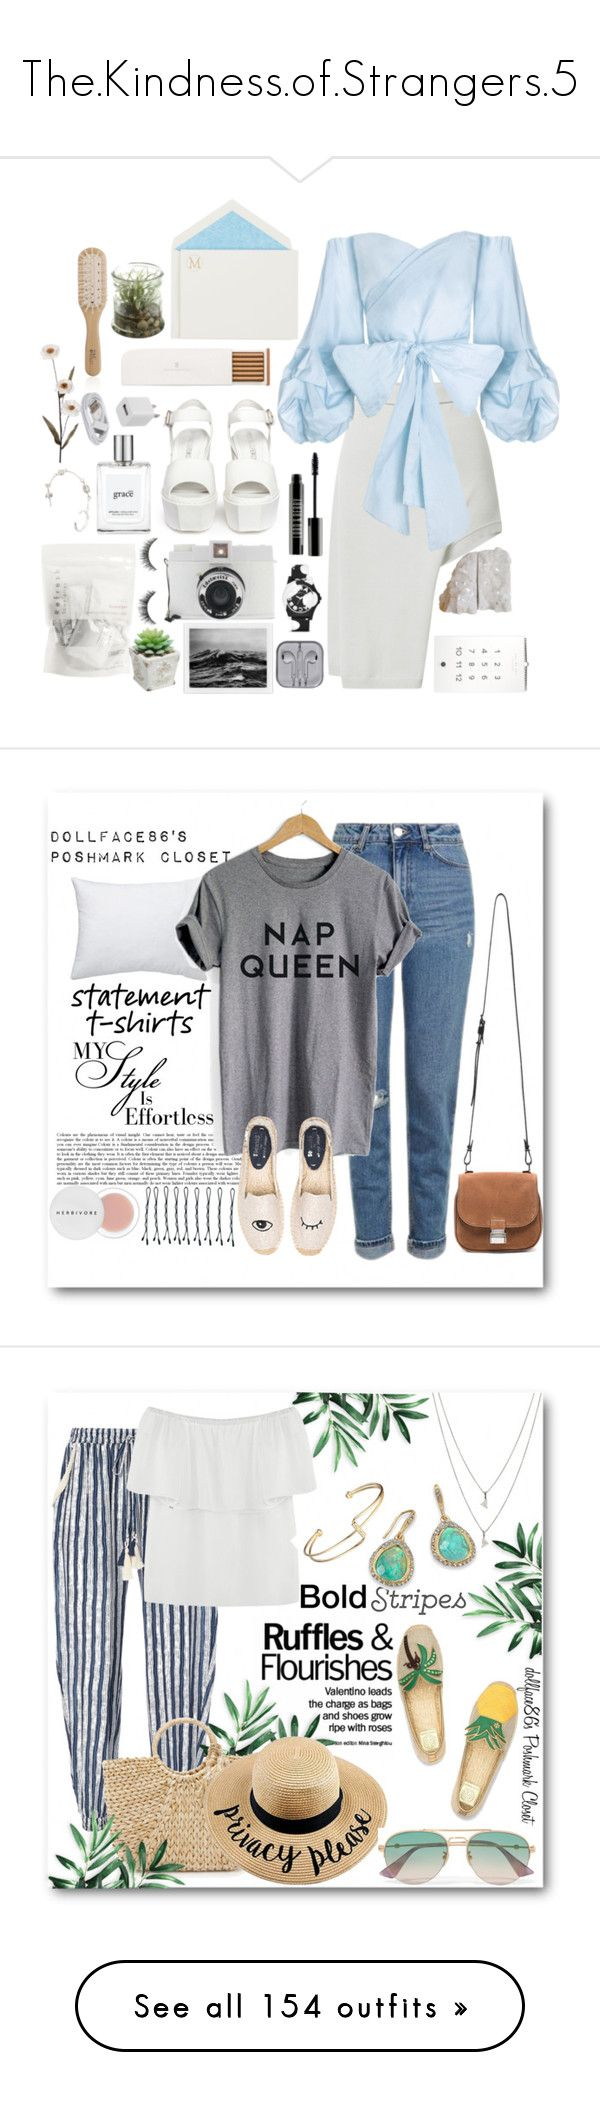 """The.Kindness.of.Strangers.5"" by falconry ❤ liked on Polyvore featuring Opening Ceremony, Connor, Faber-Castell, philosophy, Lomography, Philip Kingsley, Vanessa Mooney, Lord & Berry, Marc by Marc Jacobs and vintage"